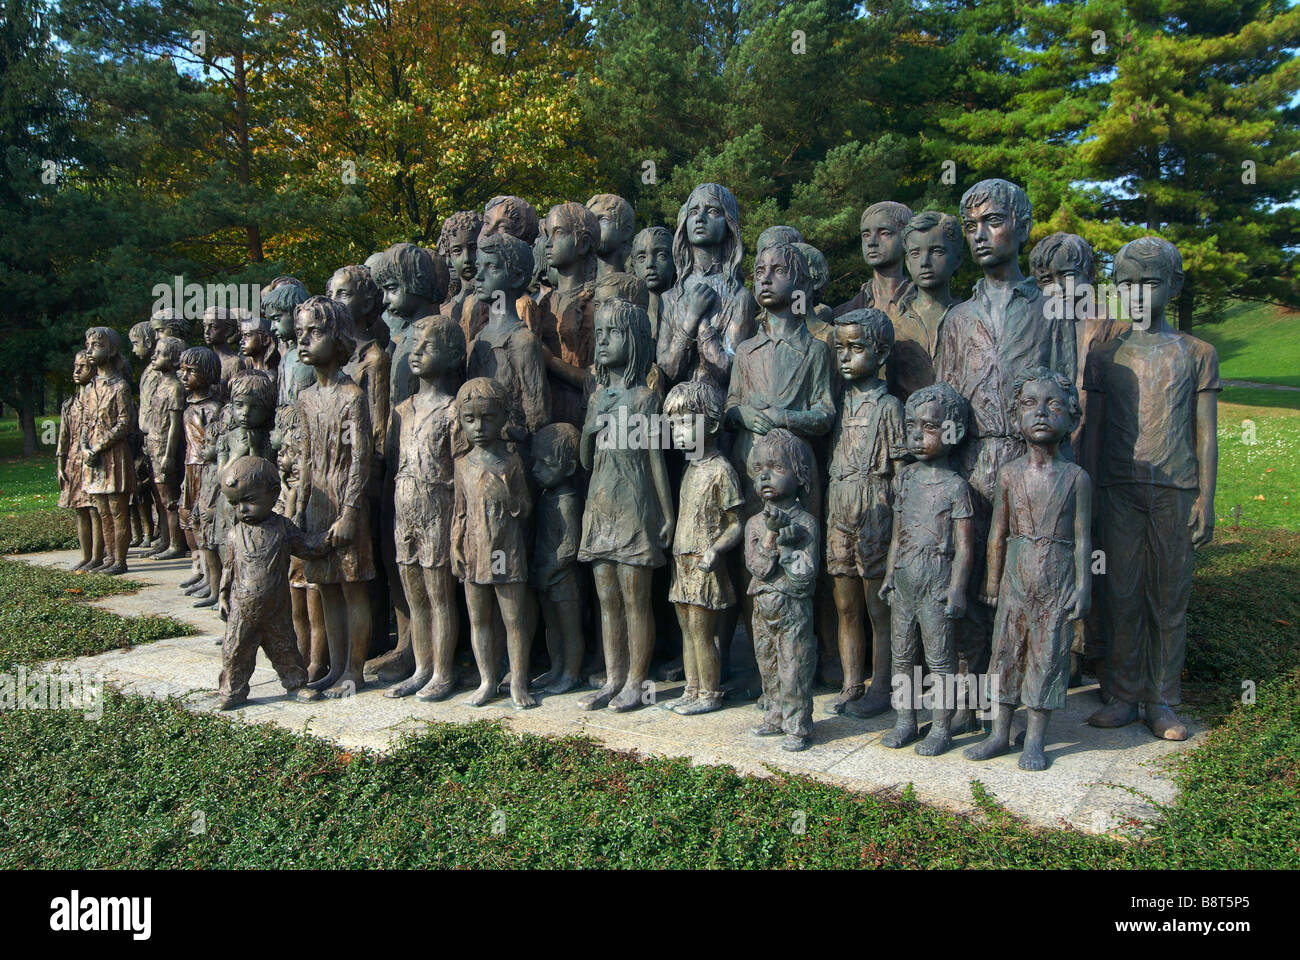 A monument to the lost children - victims of war in the park town of Lidice in the Czech Republic Stock Photo